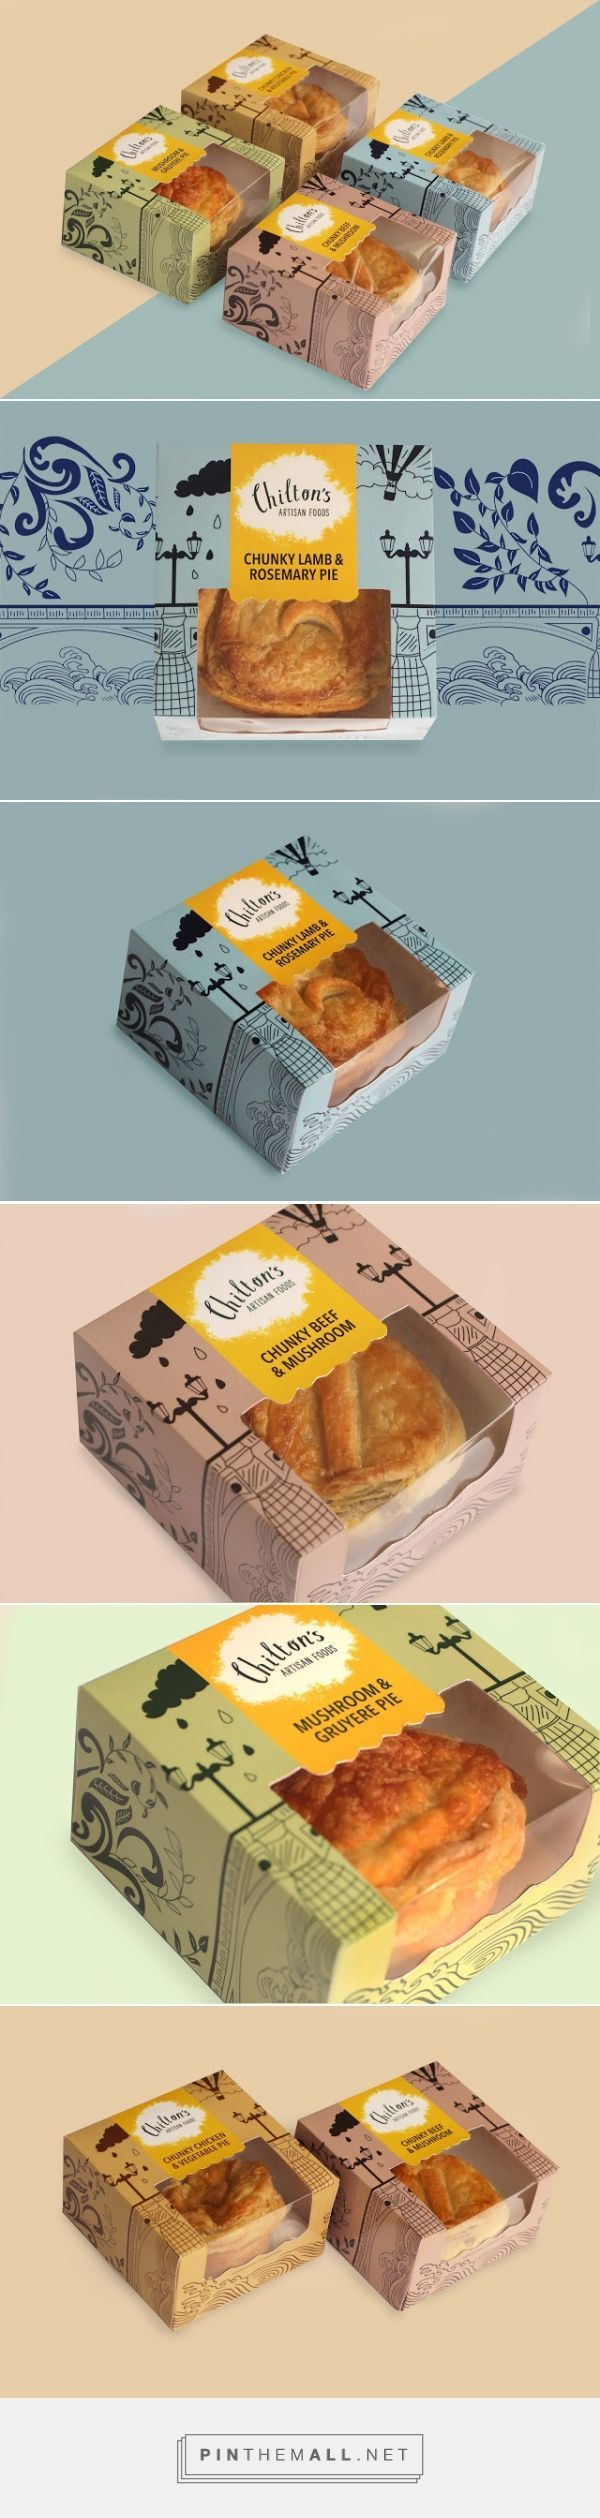 Chilton's Pie - Packaging of the World - Creative Package Design Gallery - http://www.packagingoftheworld.com/2016/01/chiltons-pie.html